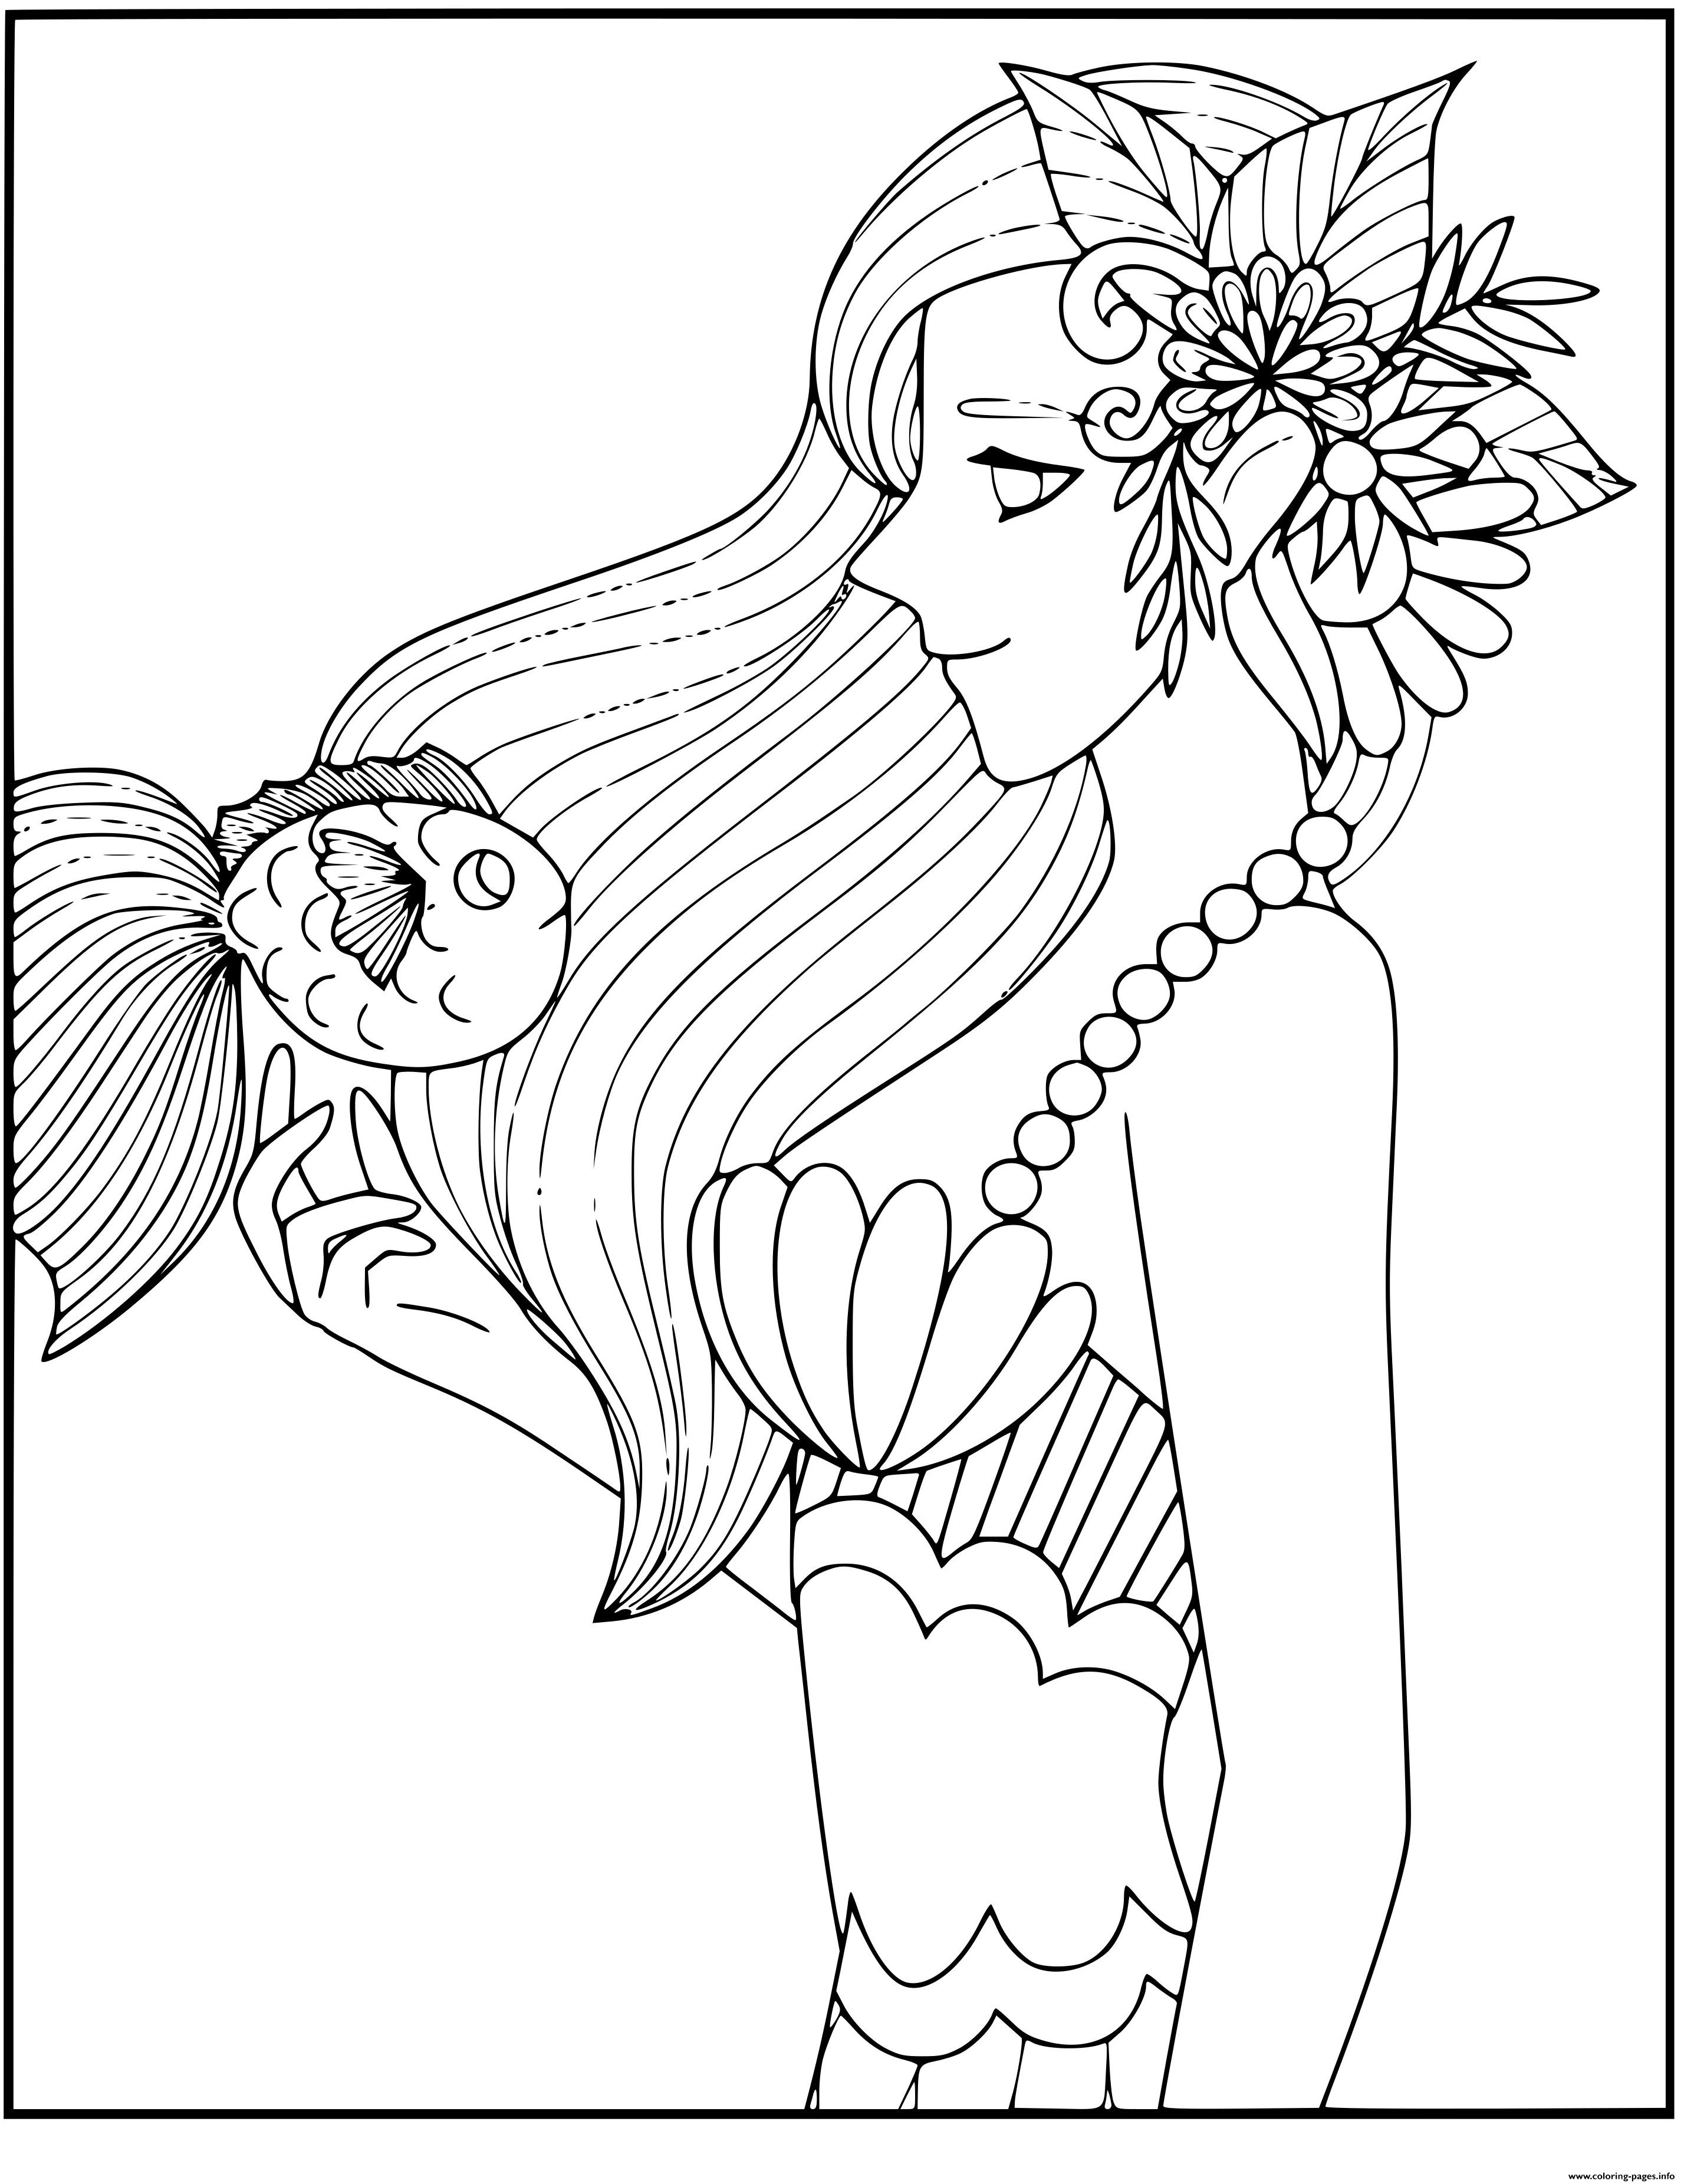 Smart Mermaid With A Fish Friend coloring pages